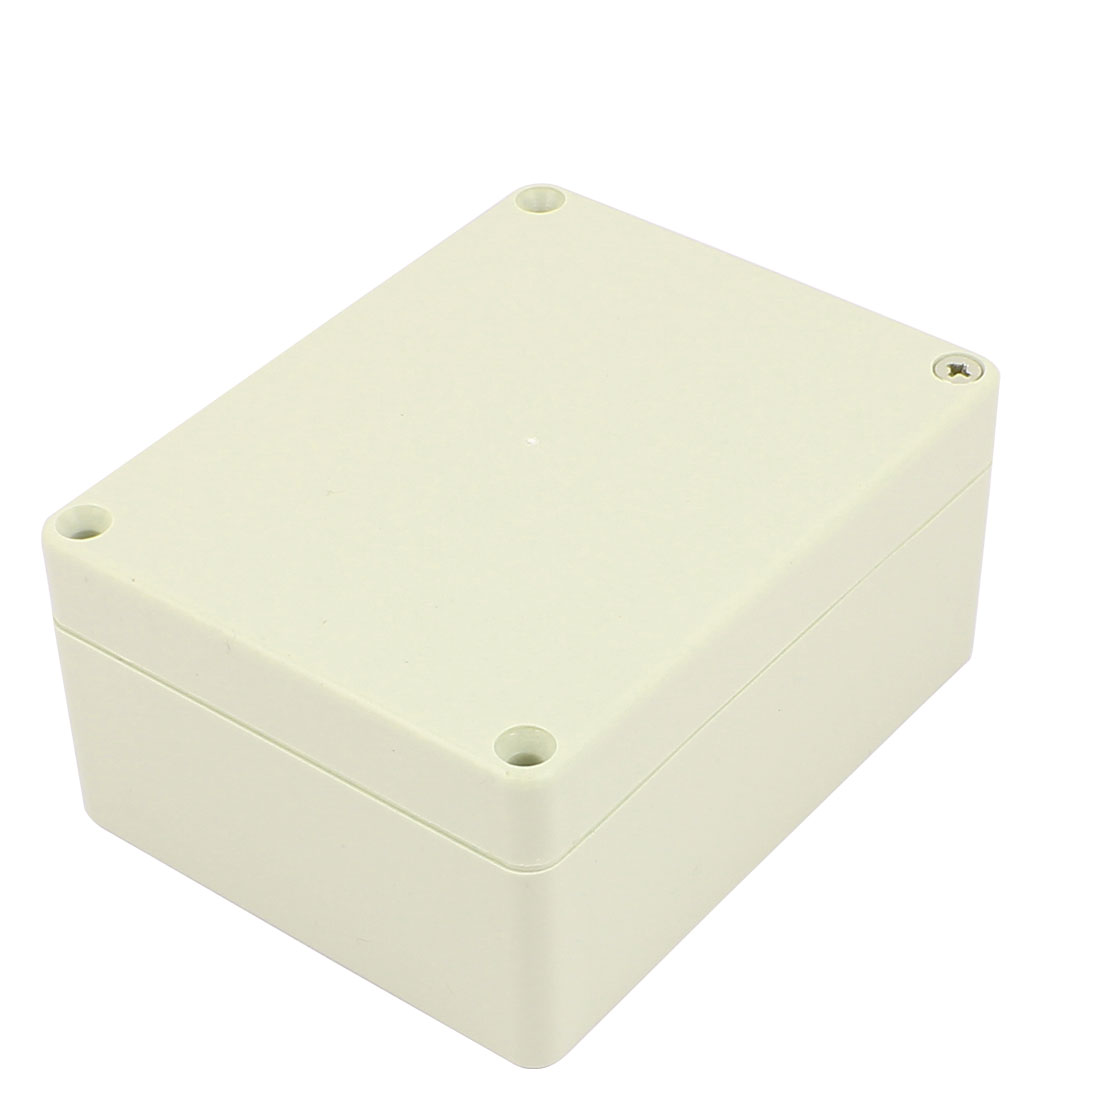 Dustproof IP65 Junction Box DIY Terminal Connection Enclosure Adaptable 107mm x 82mm x 47mm